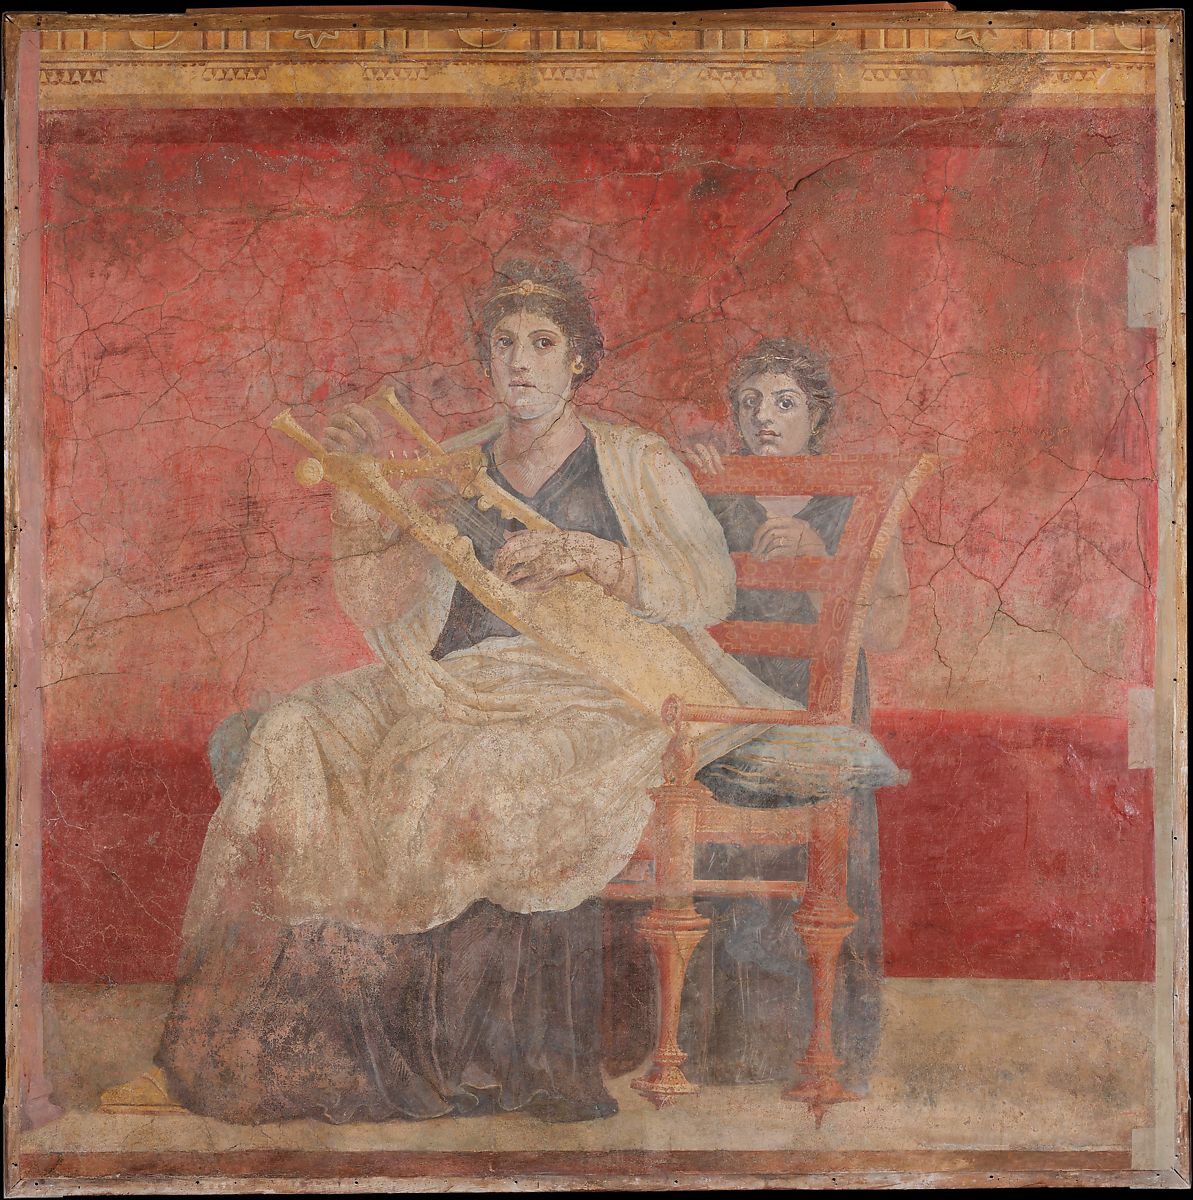 La Pittura Ellenistica Romana Wall Painting From Room H Of The Villa Of P Fannius Synistor At